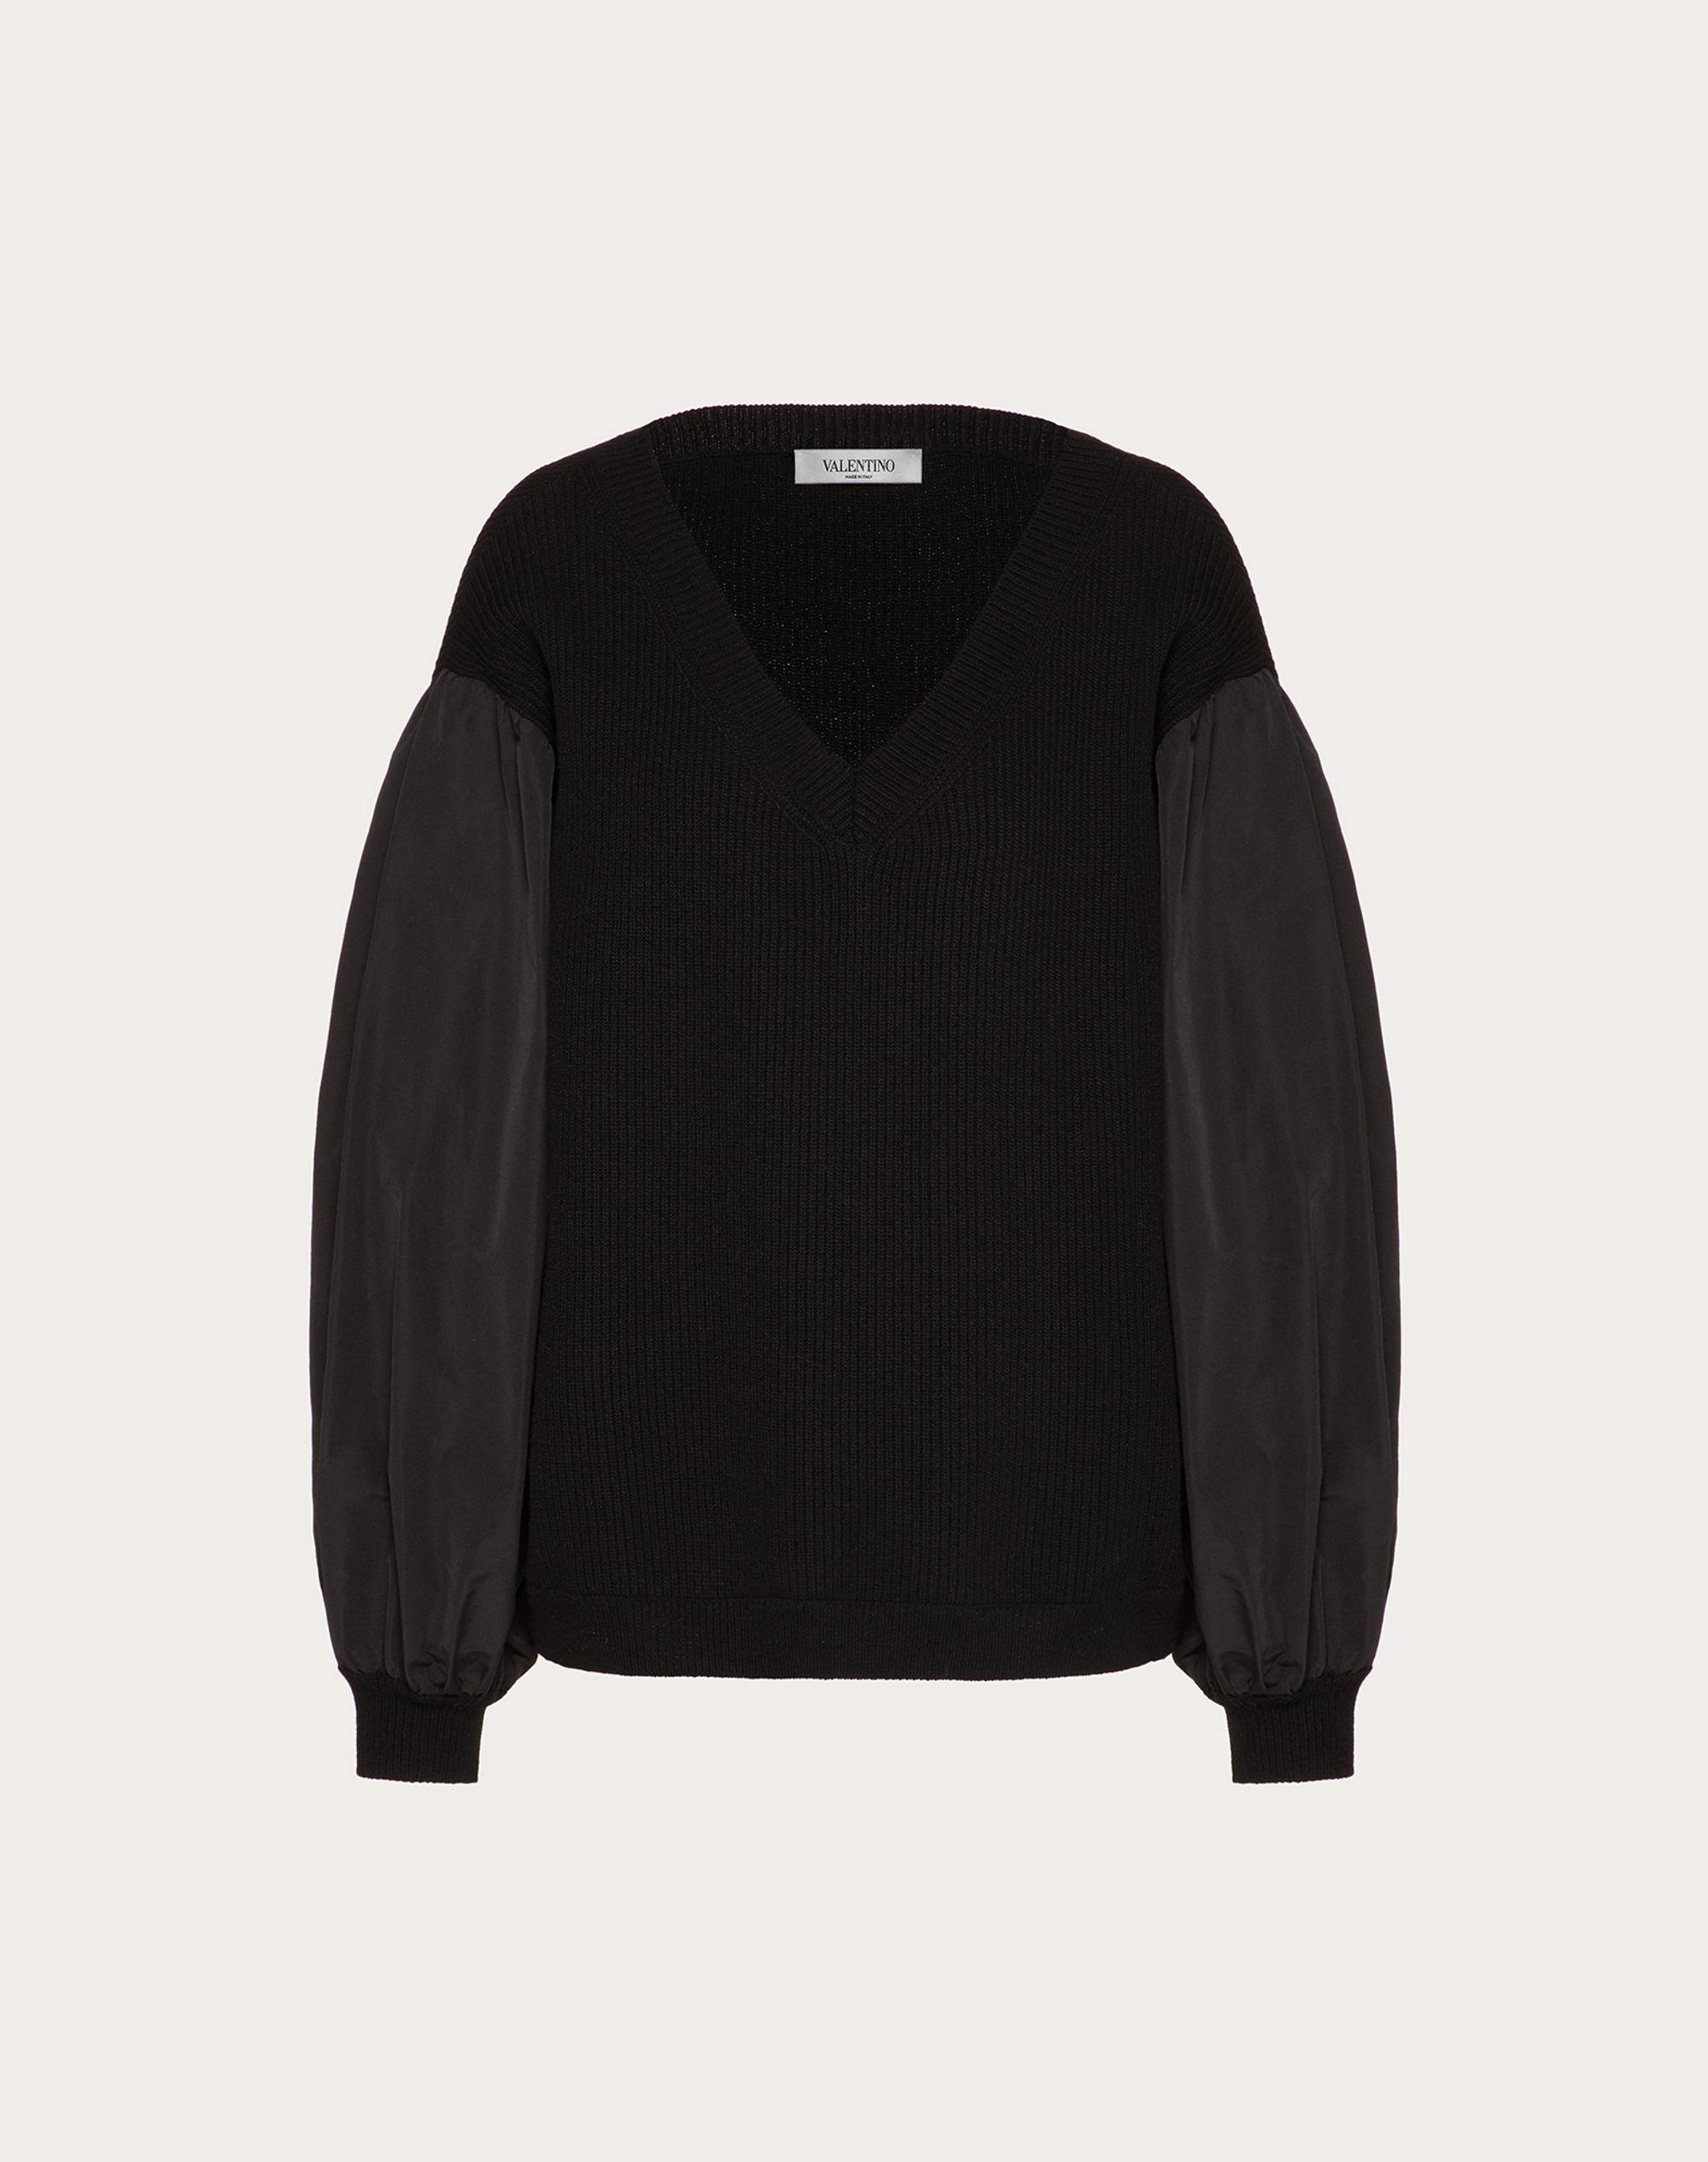 Cashmere Wool and Micro-Faille Sweater 4